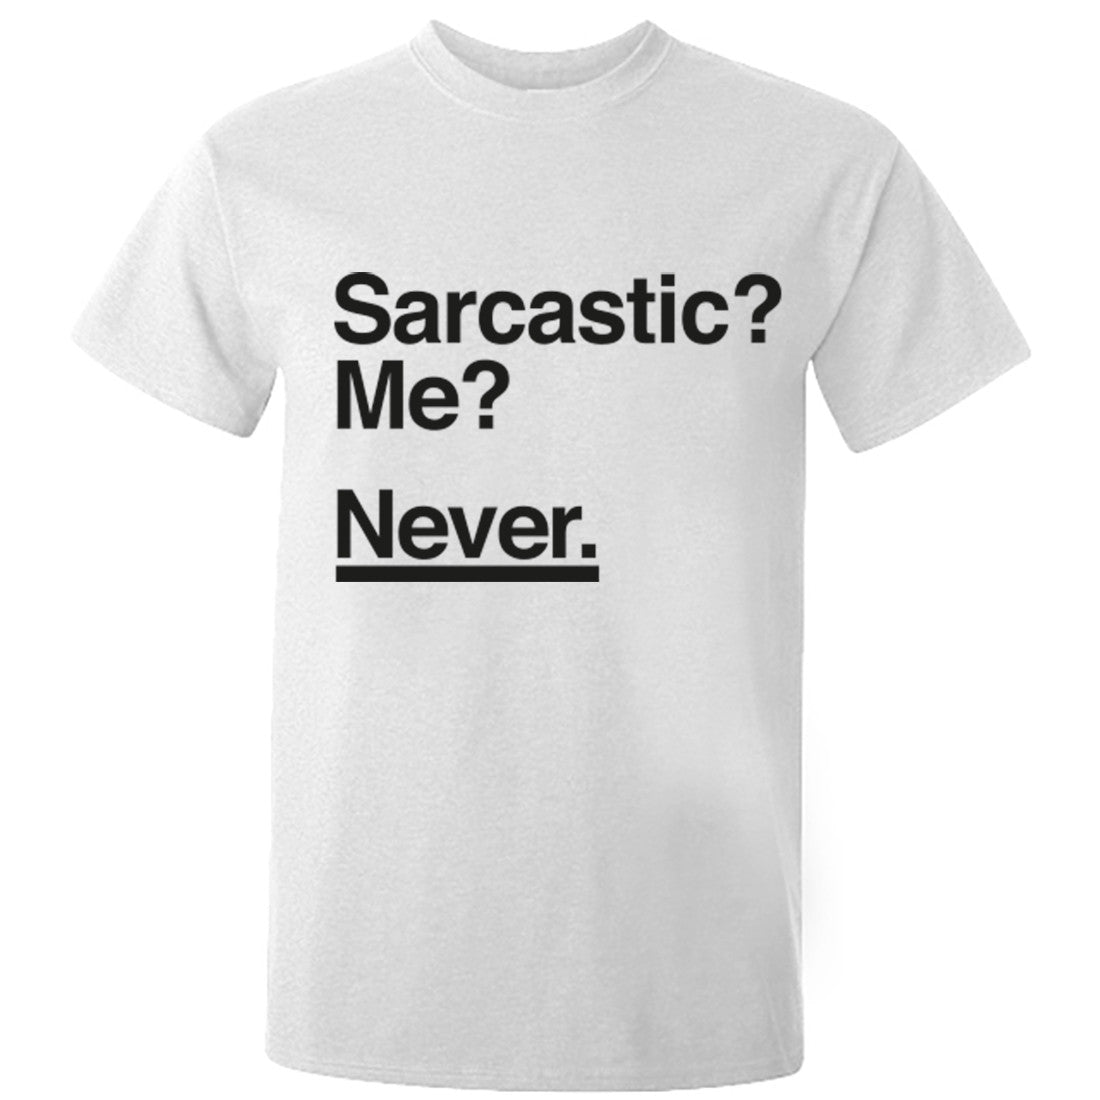 Sarcastic? Me? Never. Unisex Fit T-Shirt K0424 - Illustrated Identity Ltd.